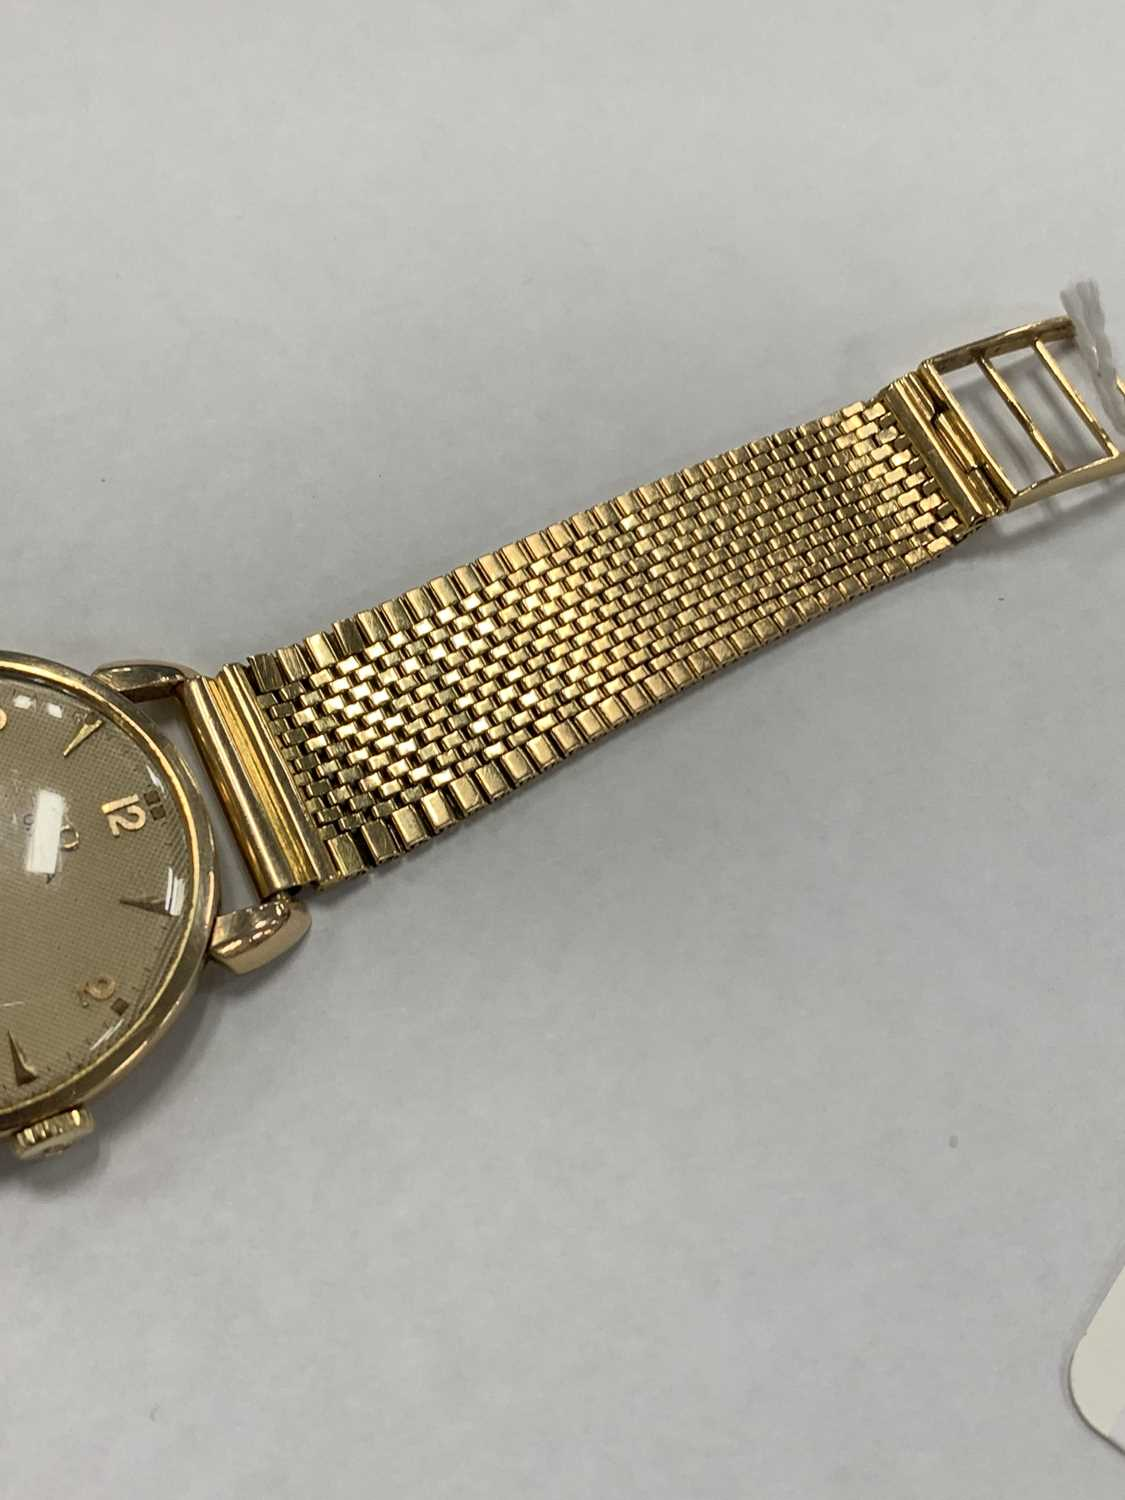 A Gentleman's gold plated Omega wristwatch with yellow metal bracelet - Image 2 of 9